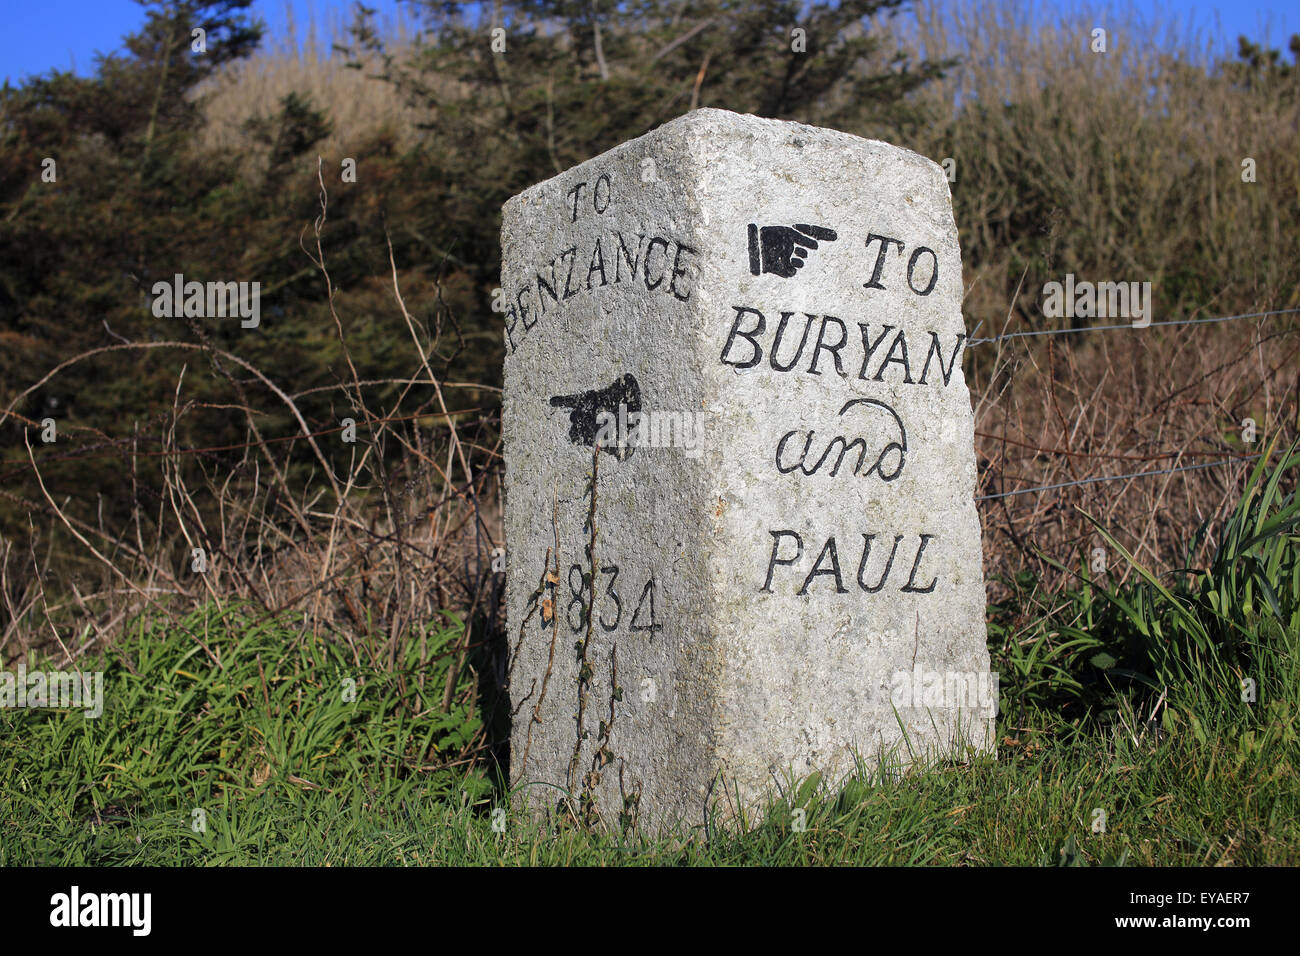 An old milestone dated 1834, 'To Penzance' and 'To Buryan and Paul', Sennen, Cornwall, England, - Stock Image